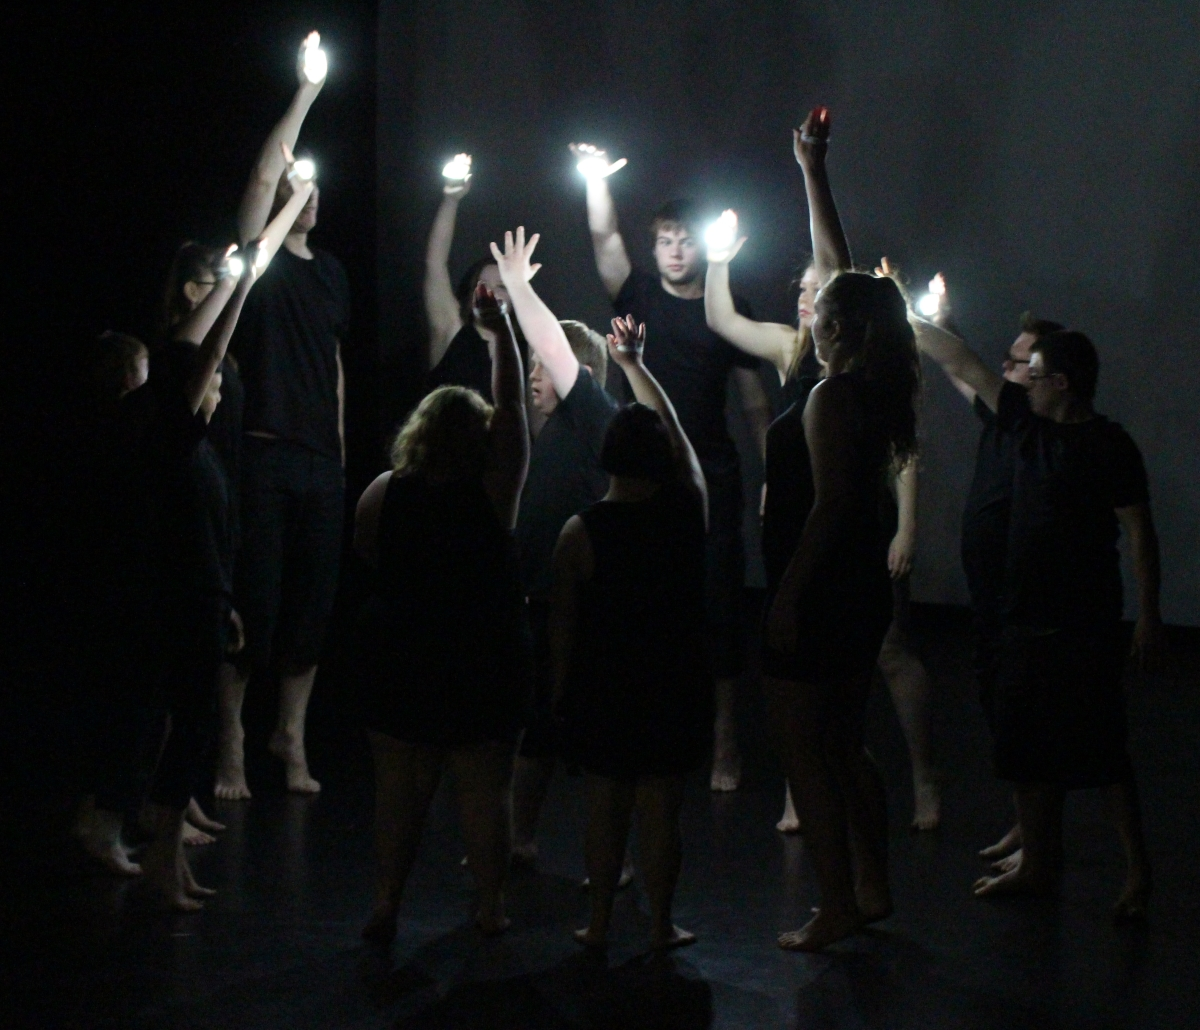 Jolt youth performing with hand lights